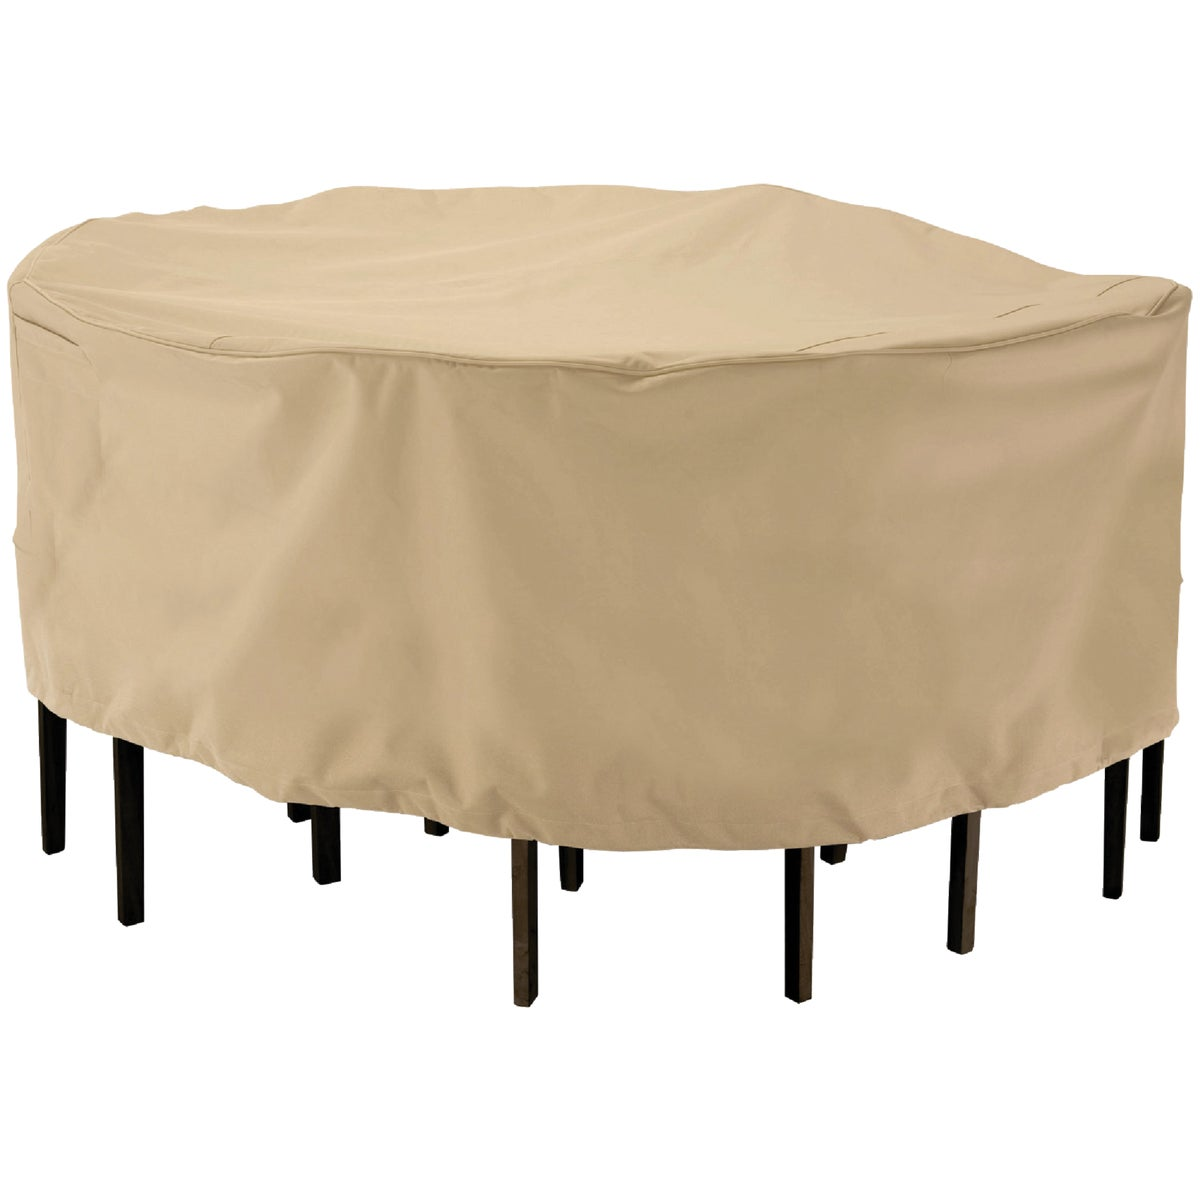 Classic Accessories M RND TABLE/CHAIR COVER 58212